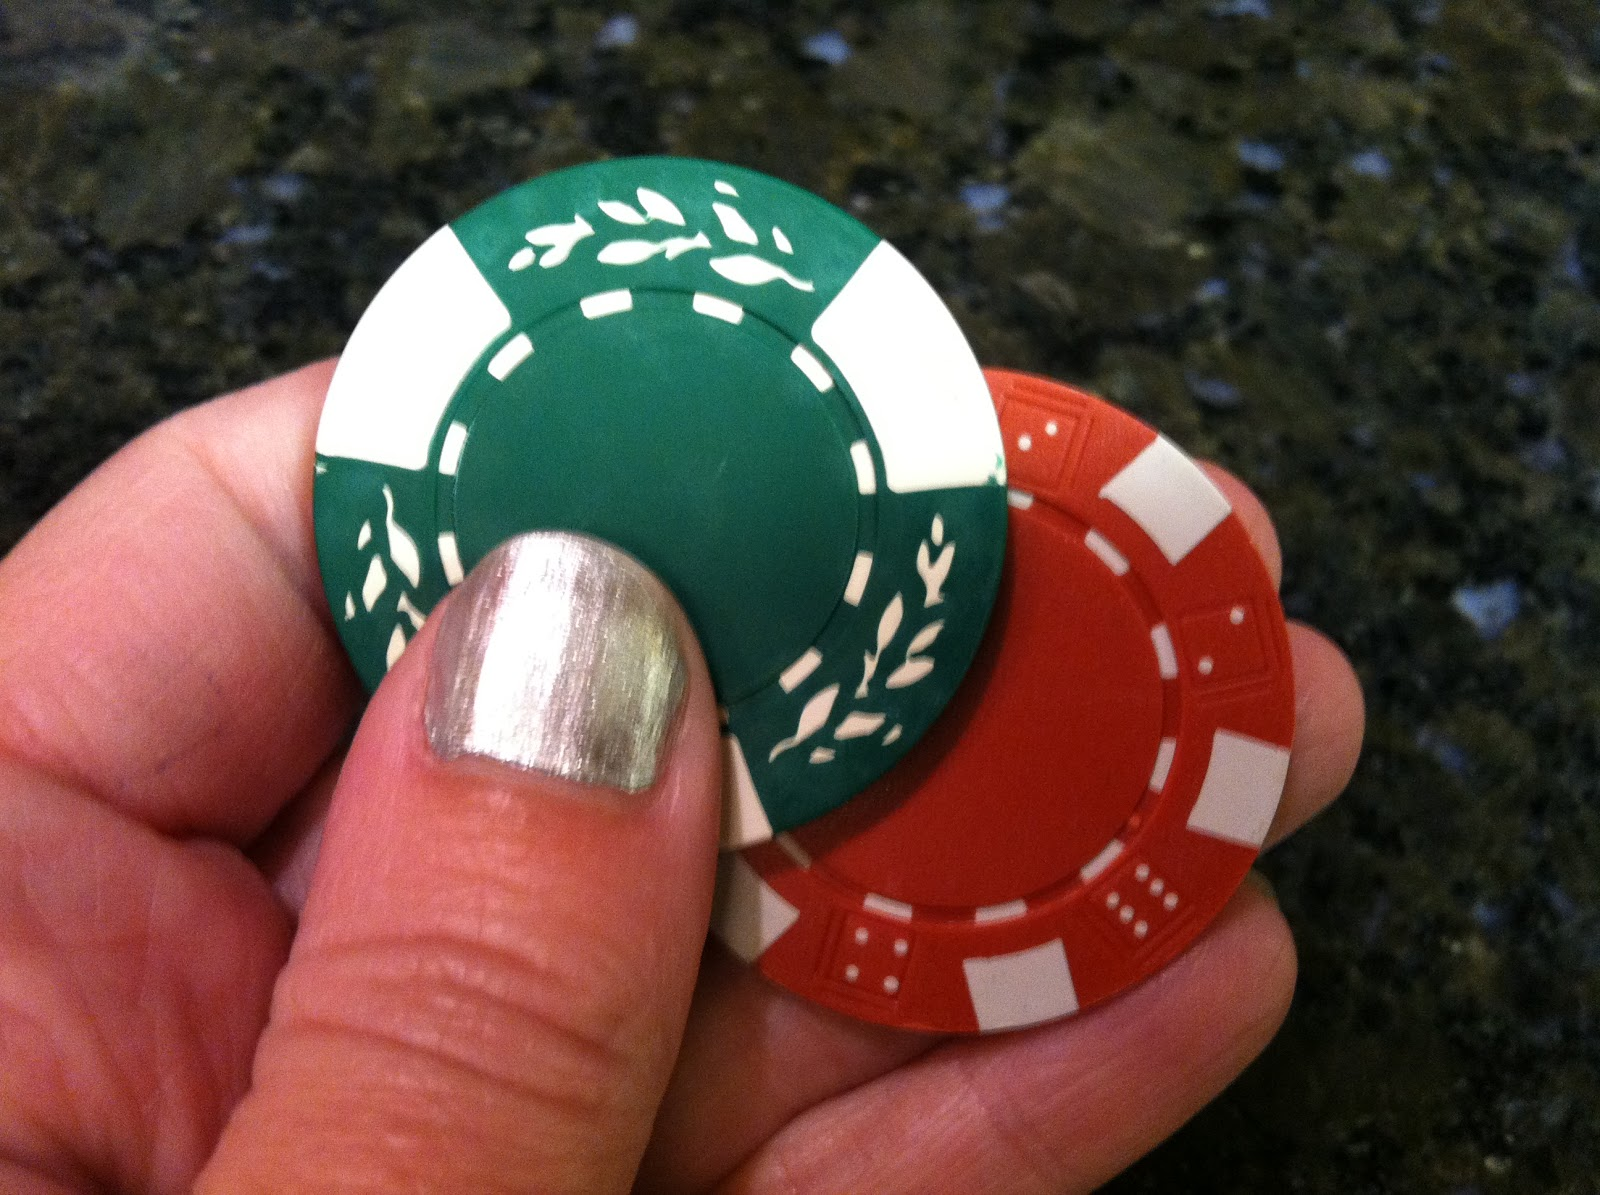 The Iced Queen: Royal Icing Poker Chips